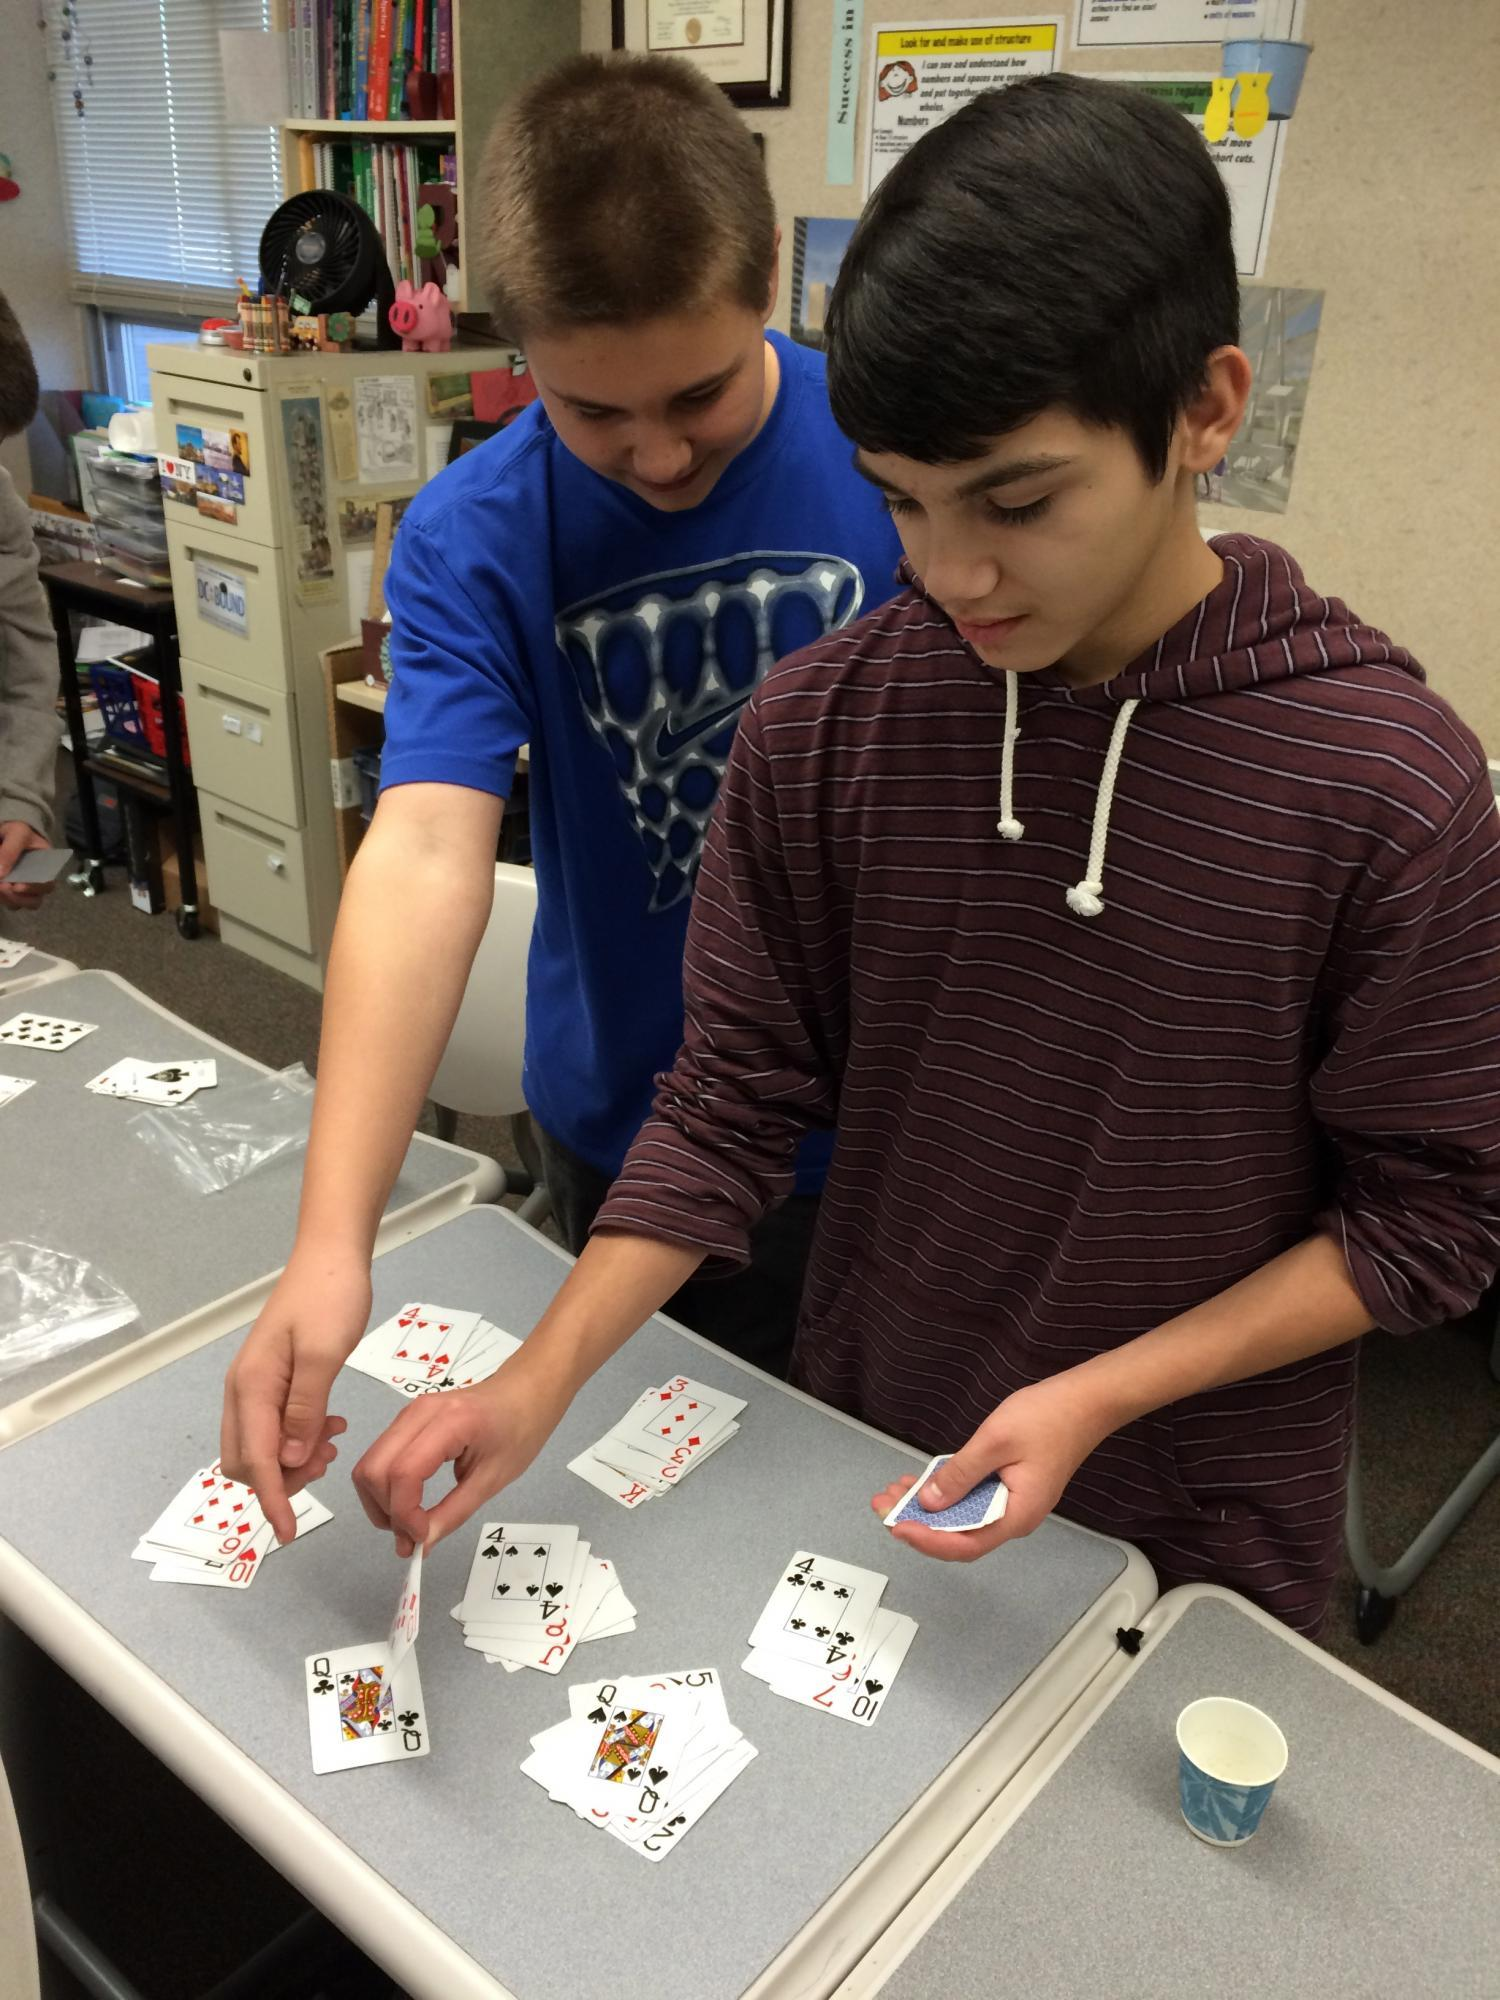 Students get involved in hands-on math activities!